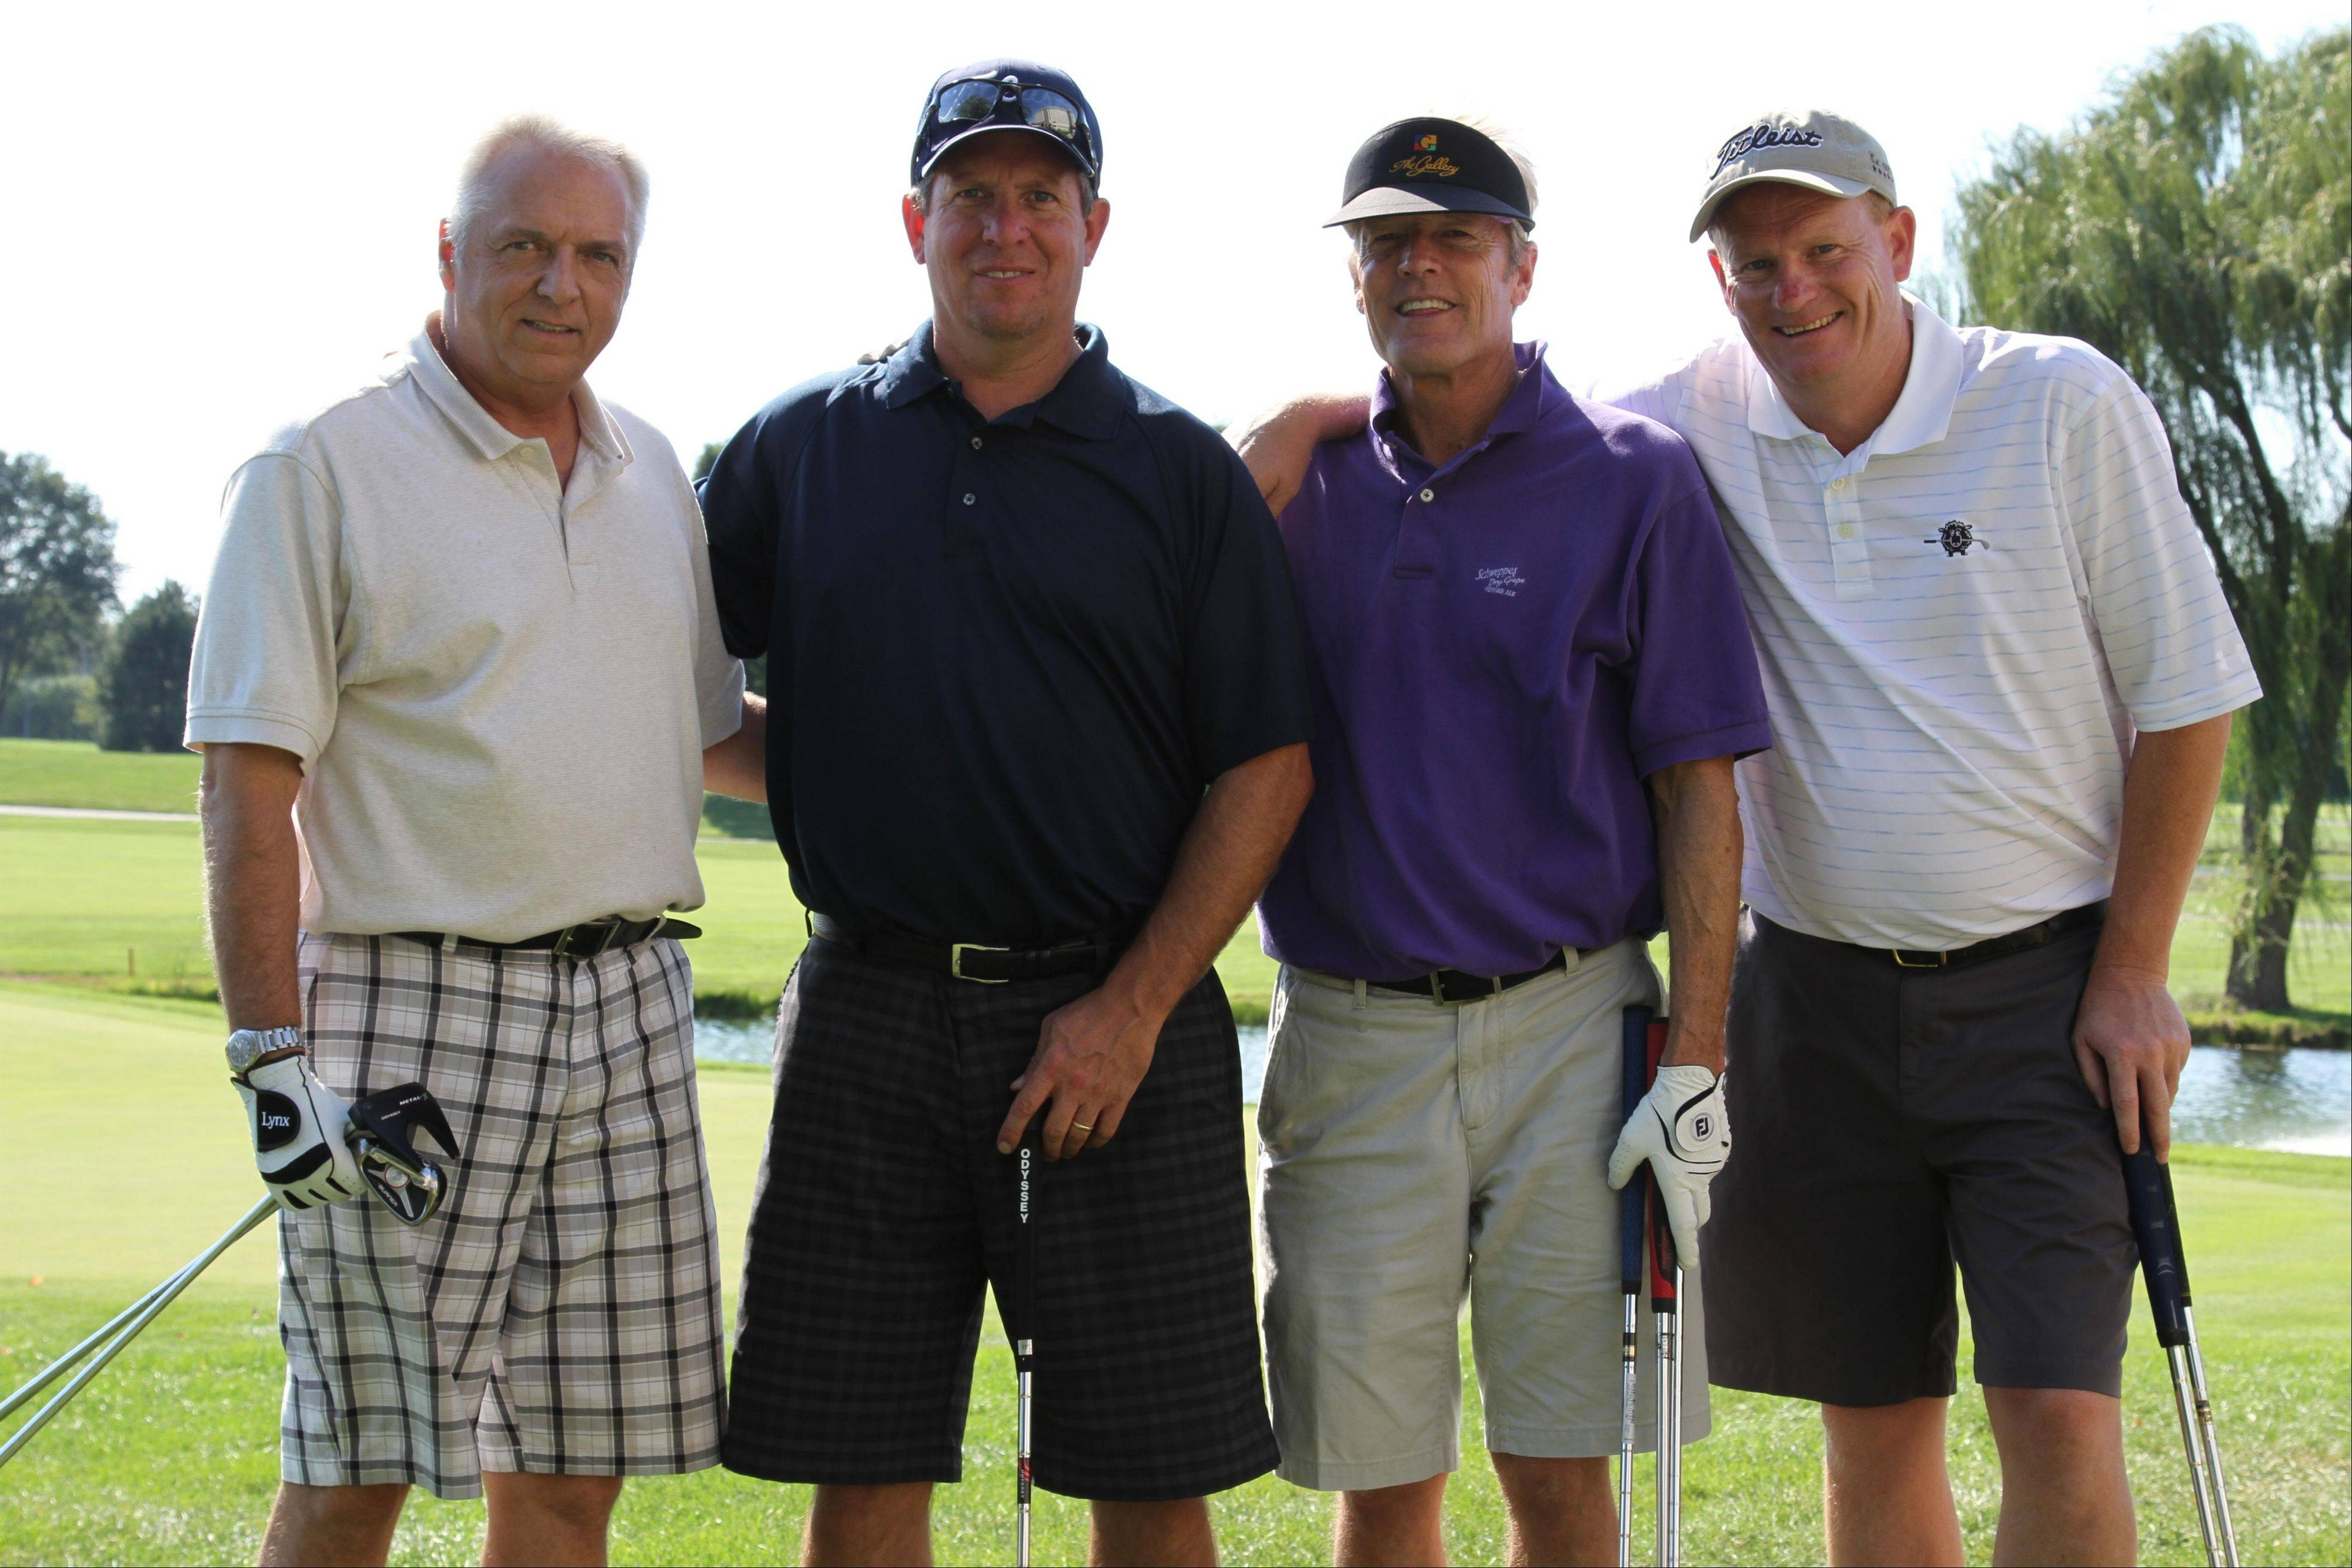 From left, Rick Perkel of Round Lake, Paul Schmidt of Casey, Paul Howard of Deerfield and Jim O'Connor Lake Bluff, winners of the National Kidney Foundation of Illinois' Kidney Care Classic.